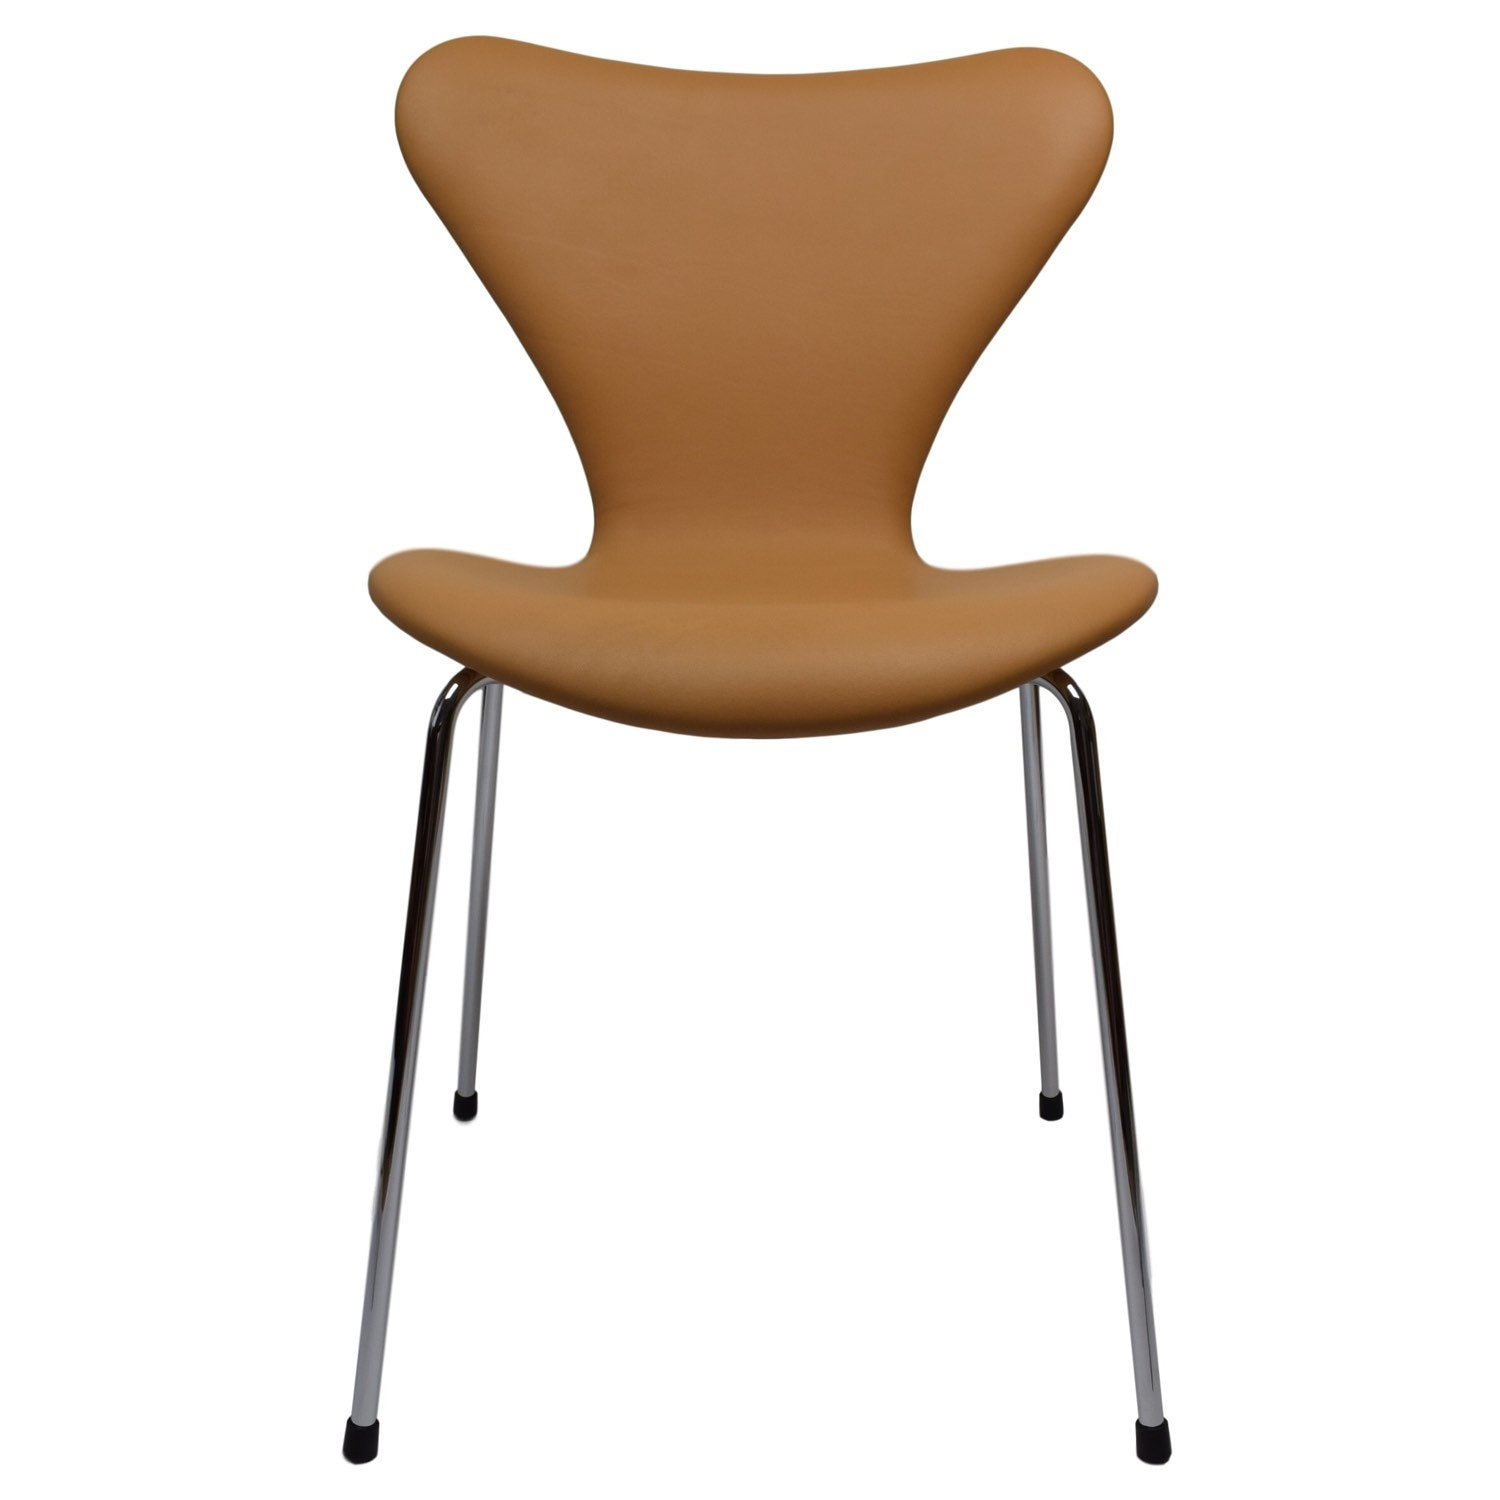 Cool Arne Jacobsen 3107 Dining Chair High Quality Nevada Aniline Pabps2019 Chair Design Images Pabps2019Com